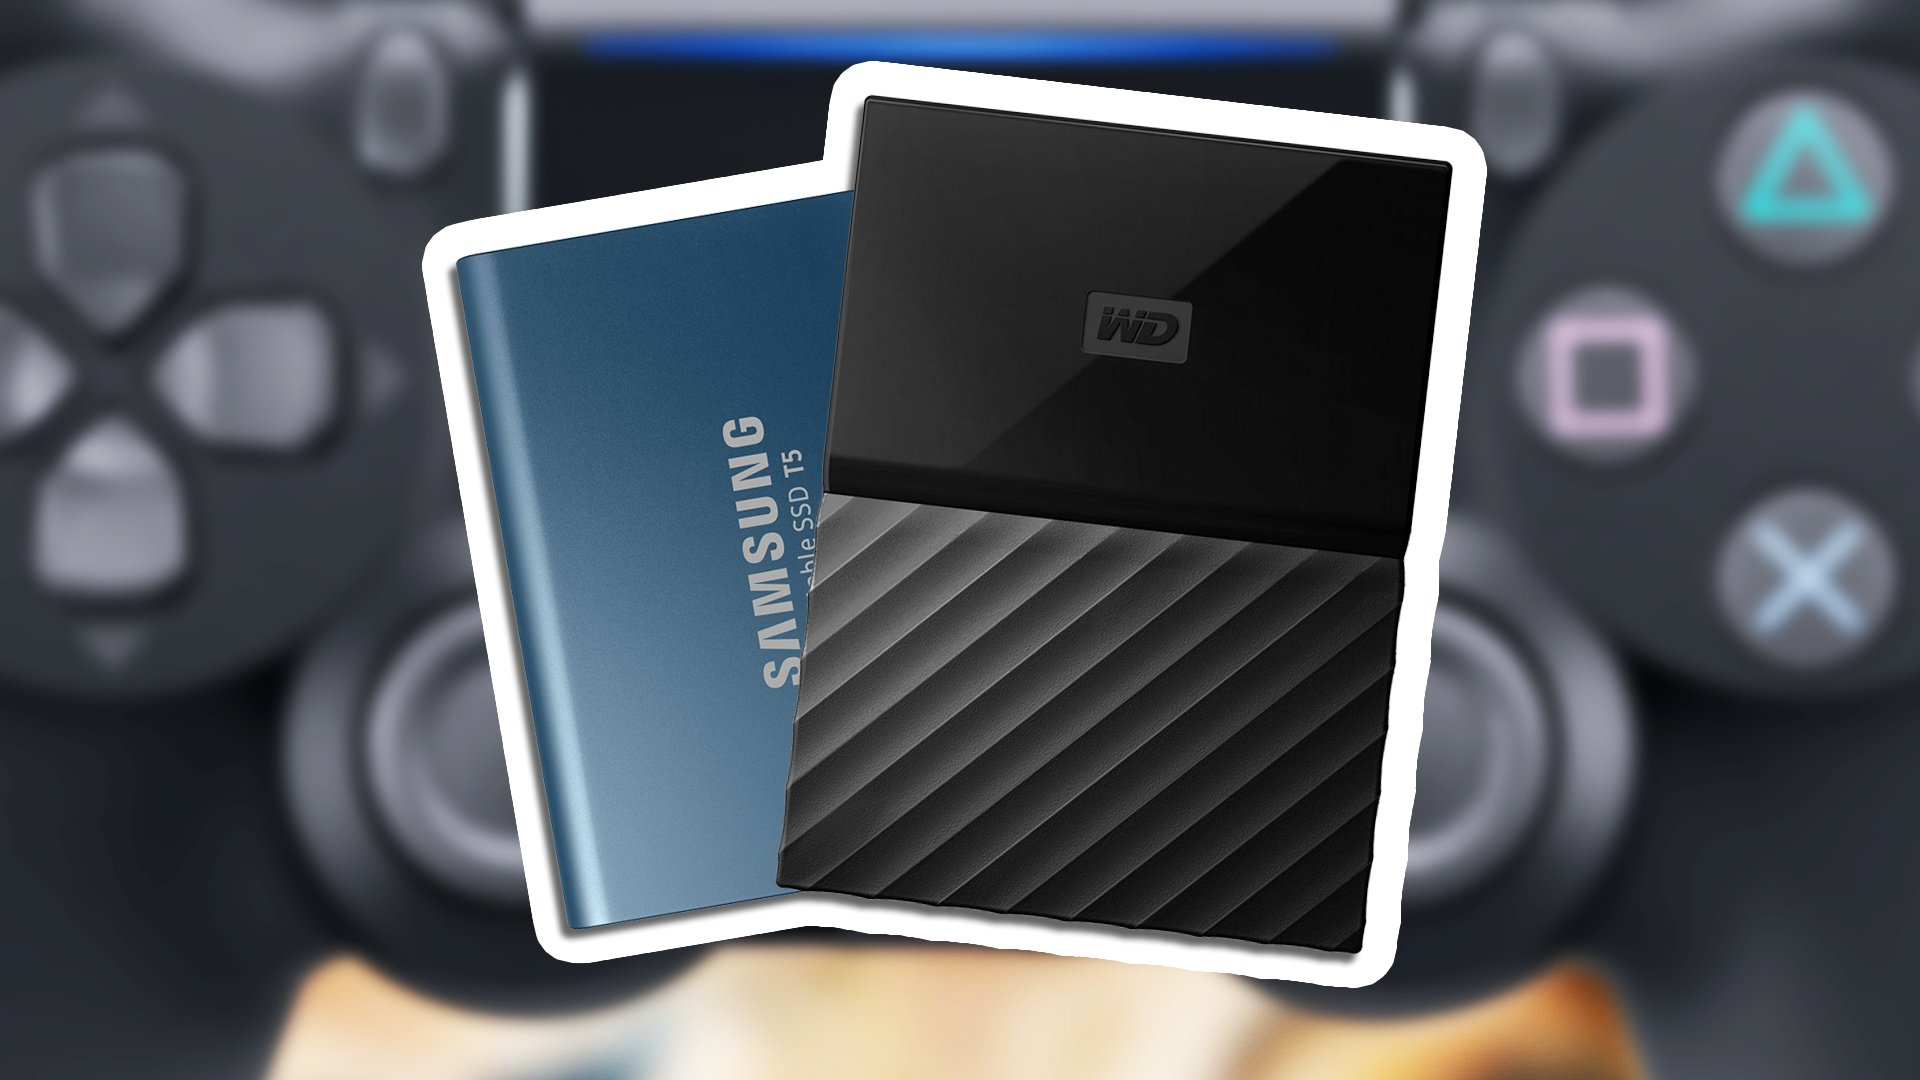 Guide: Best PS4 External Hard Drive Upgrades in 2019